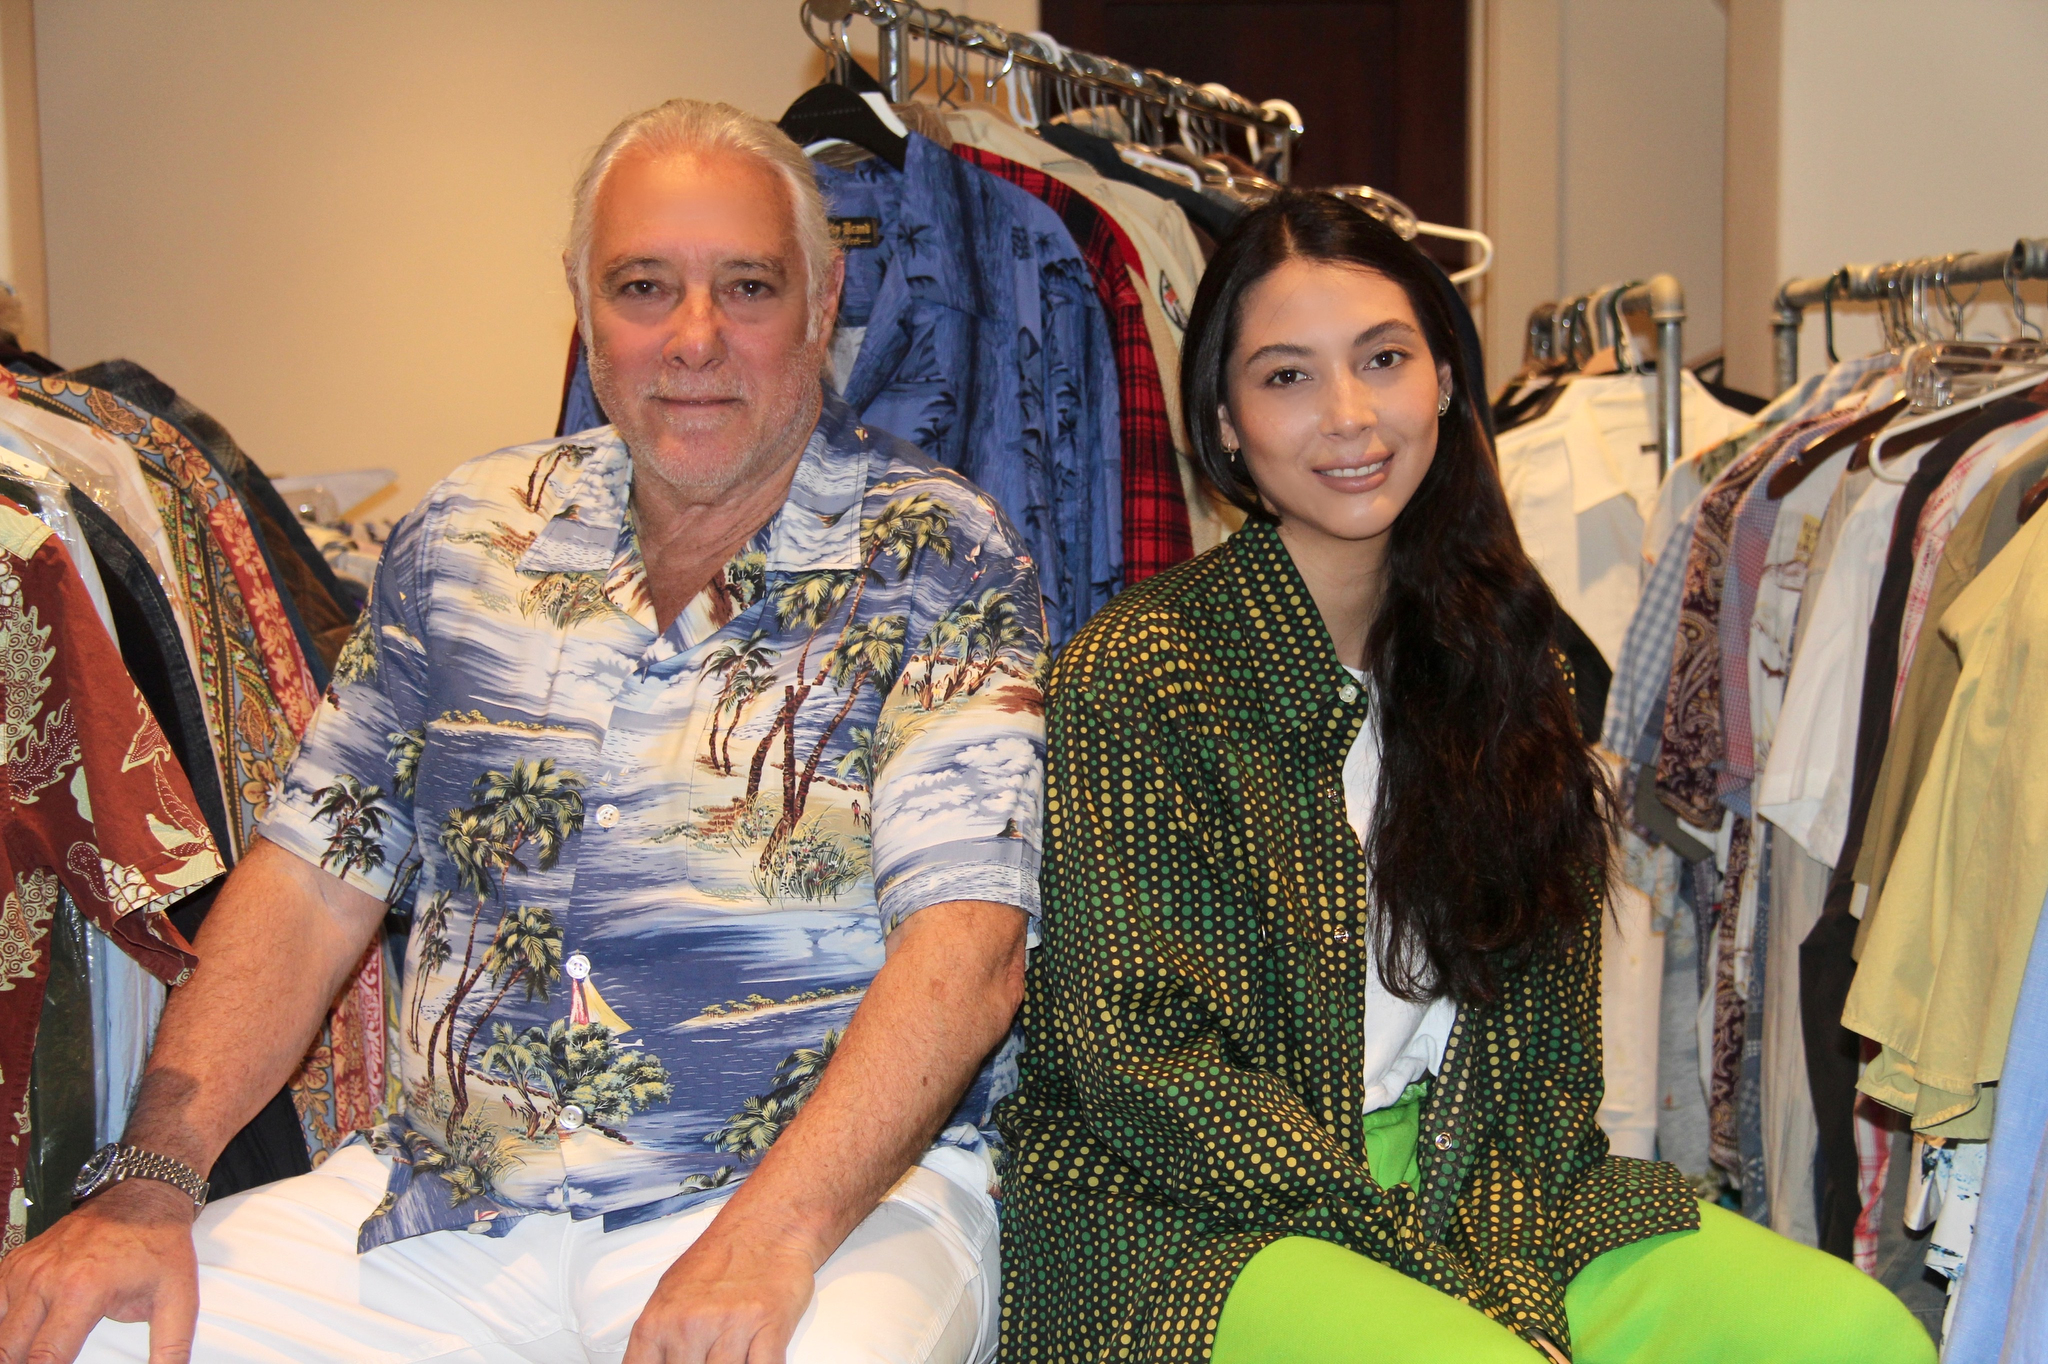 All in the family: Gene Montesano, Southern California restauranteur, Lucky Brand Jeans founder and Civilinaire co-founder, with daughter Siena Montesano, who was inspired by him to launch the brand Dad's Closet. Credit: Courtesy.